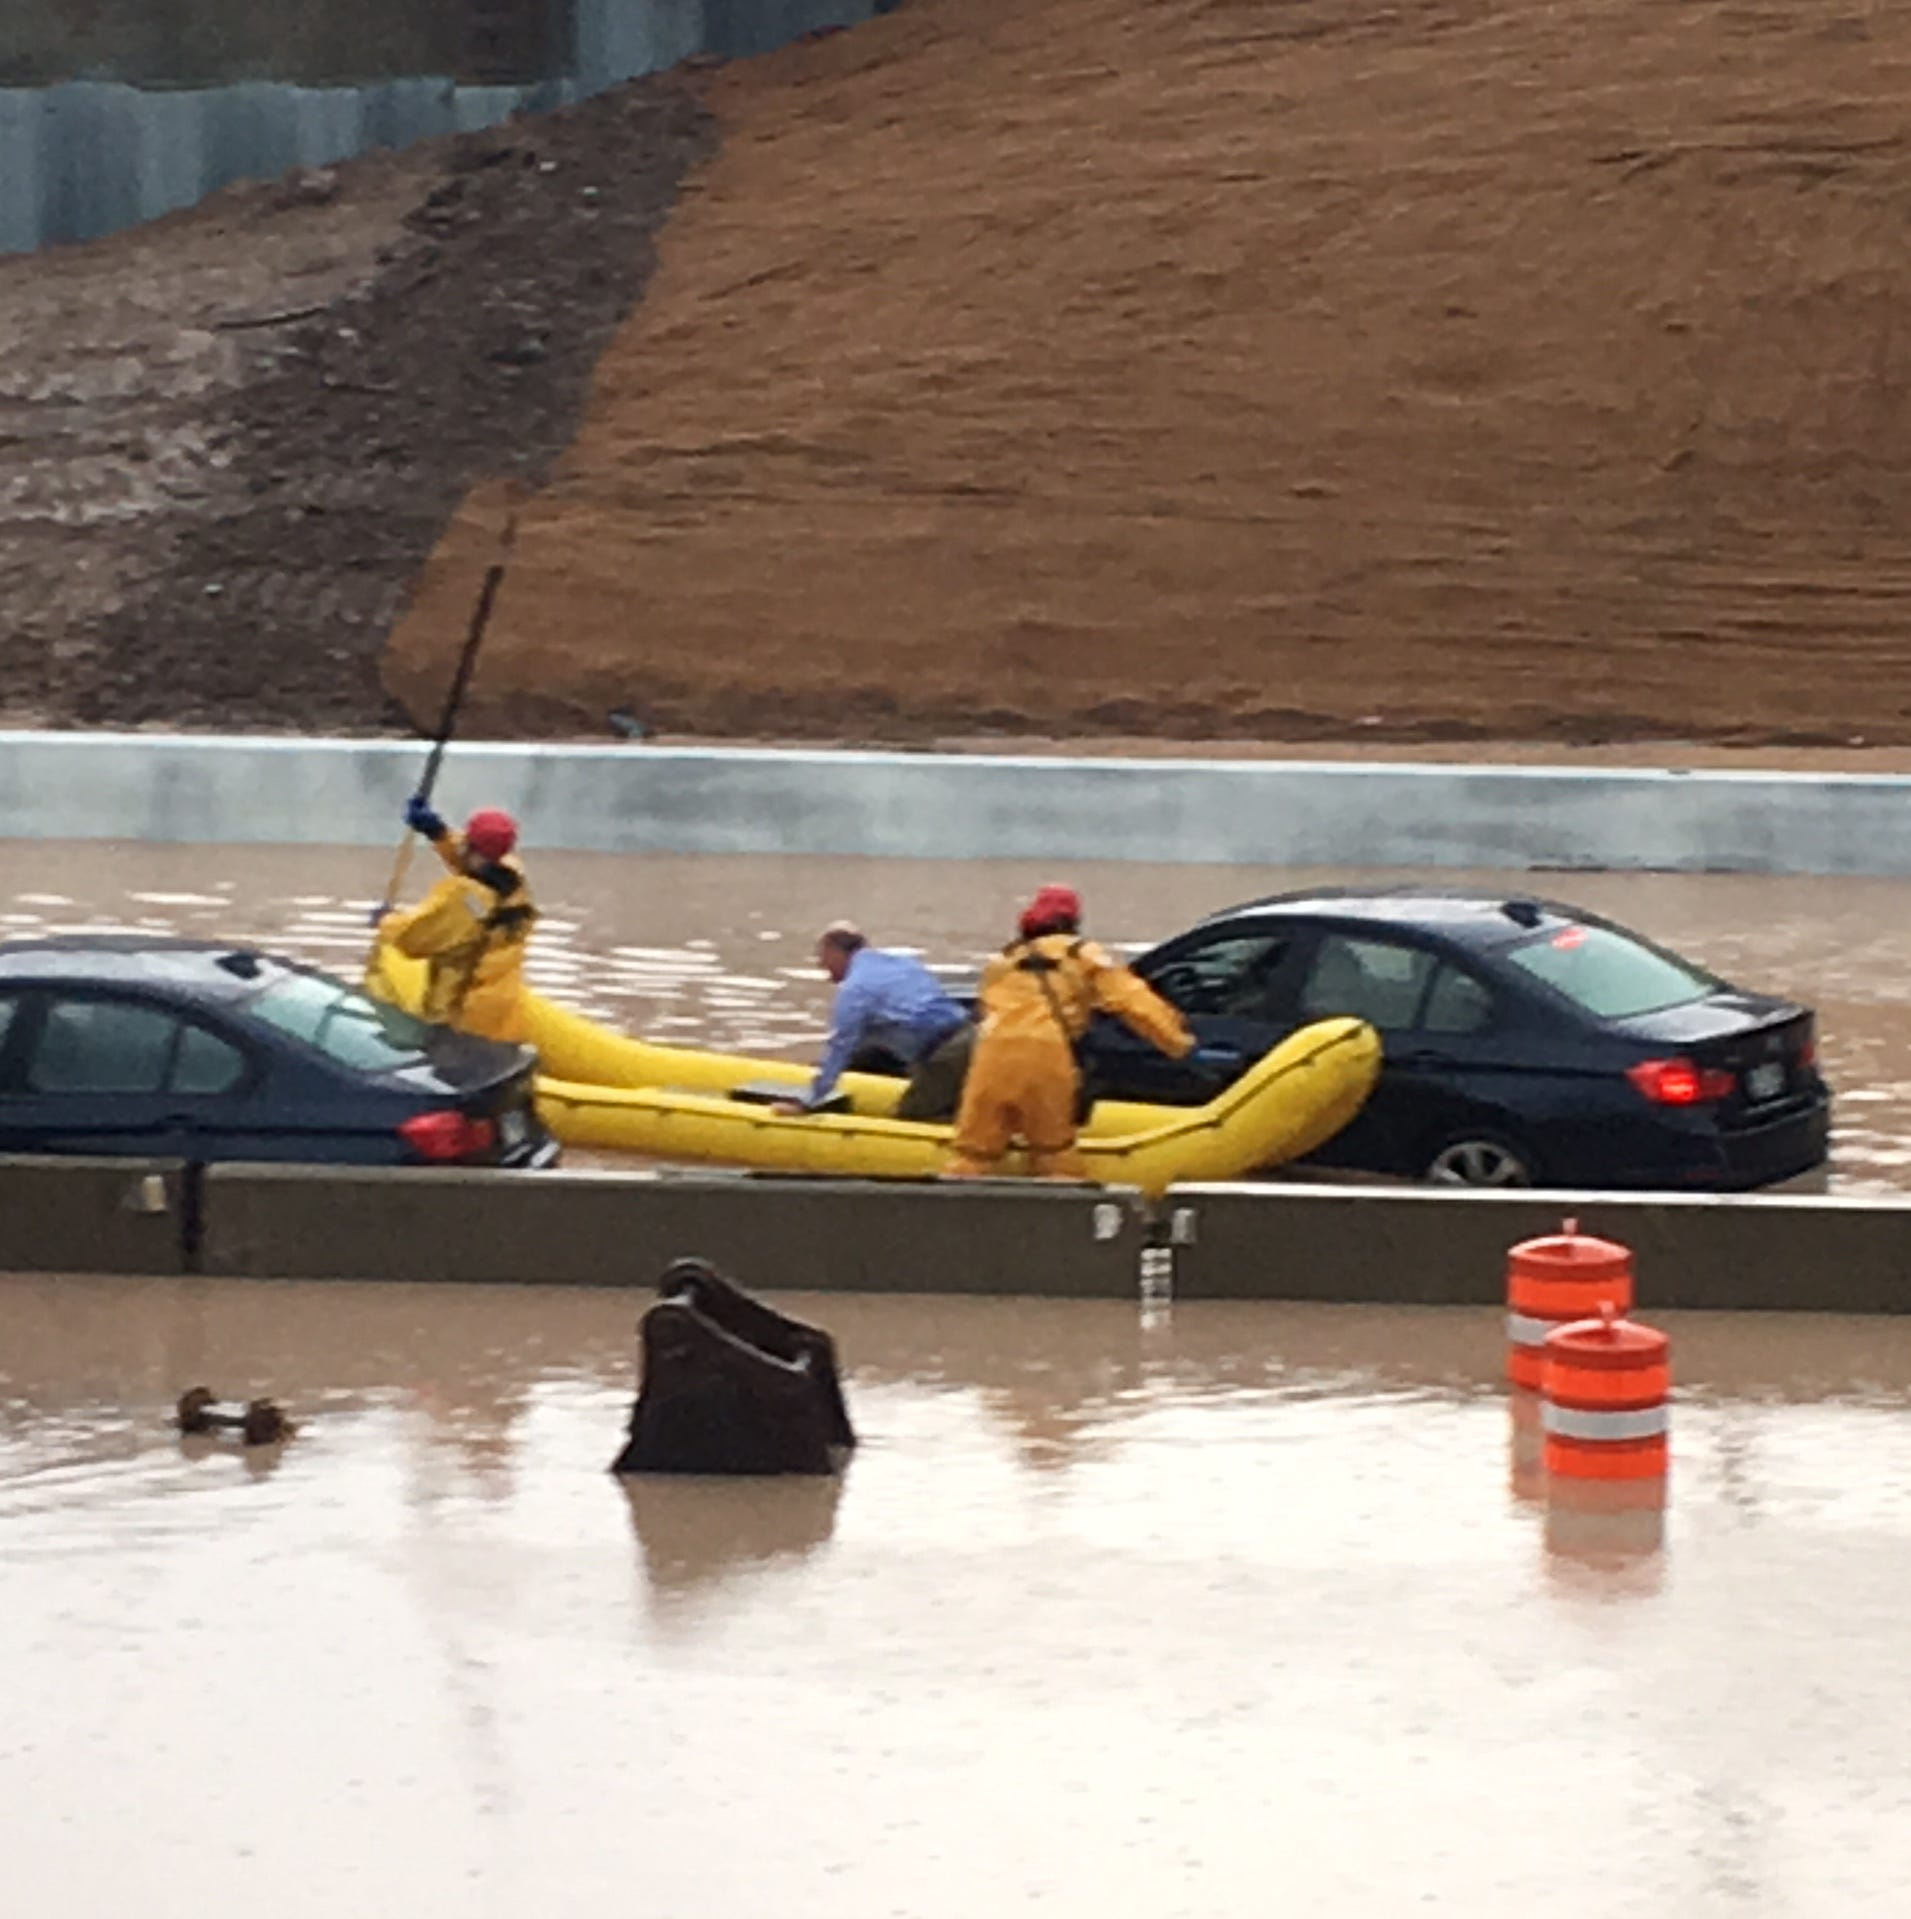 I-43 is closed again at Good Hope Road in both directions due to flooding